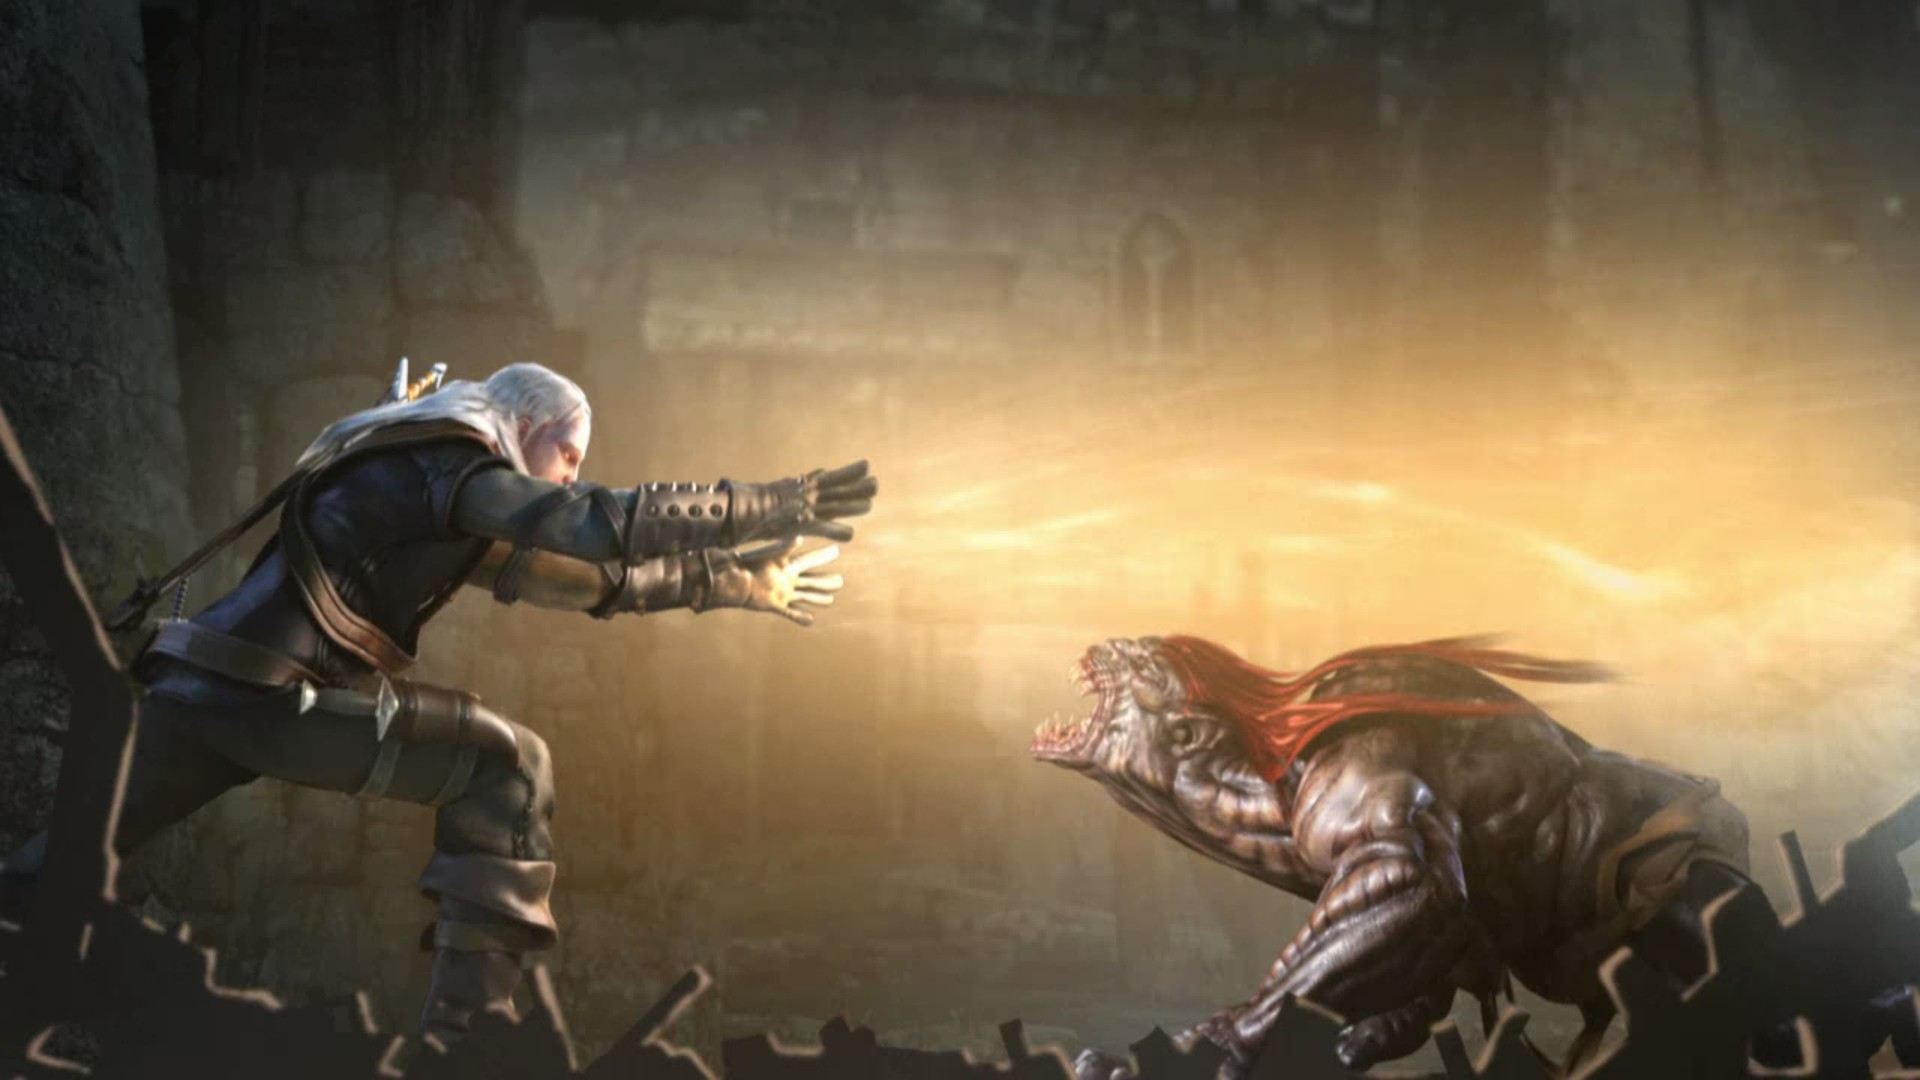 20171028180611_1.jpg - Witcher, the